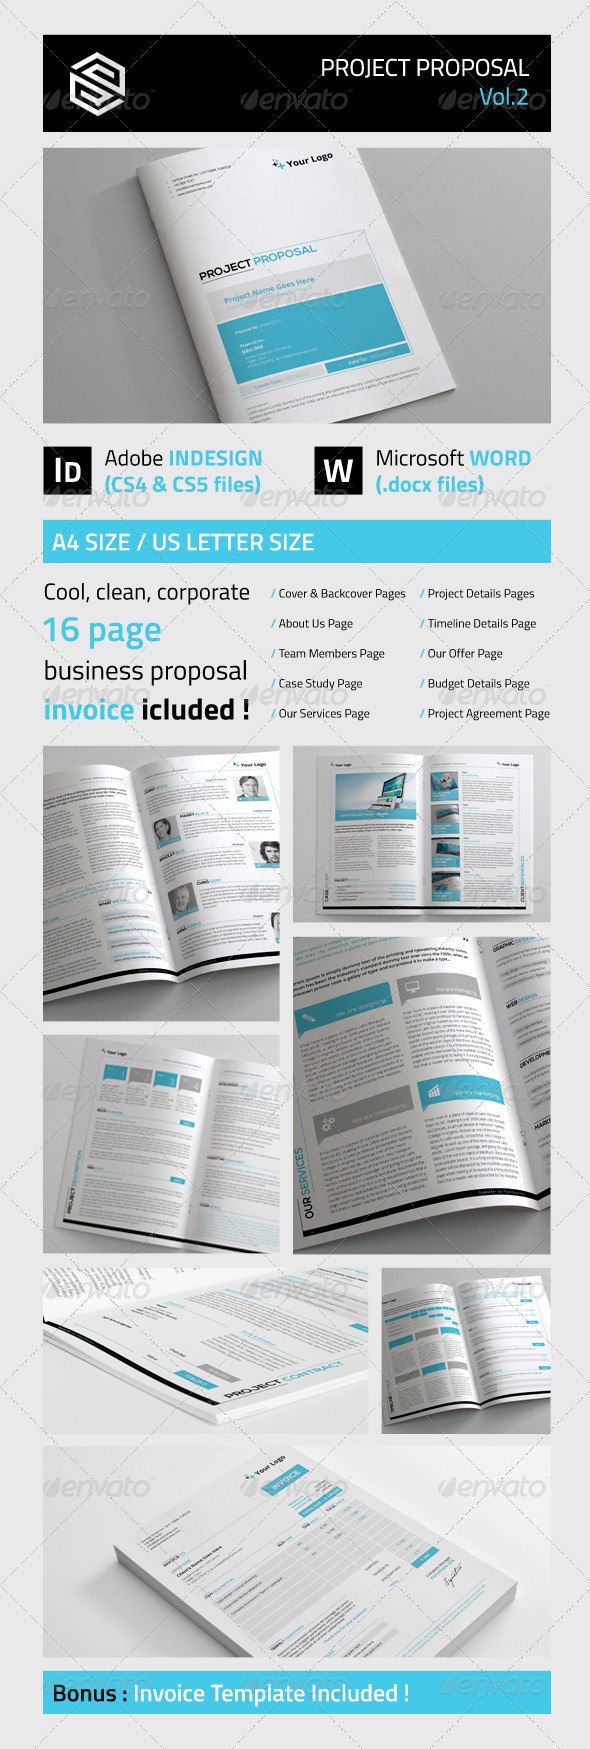 GraphicRiver Project Proposal Vol2 5271768